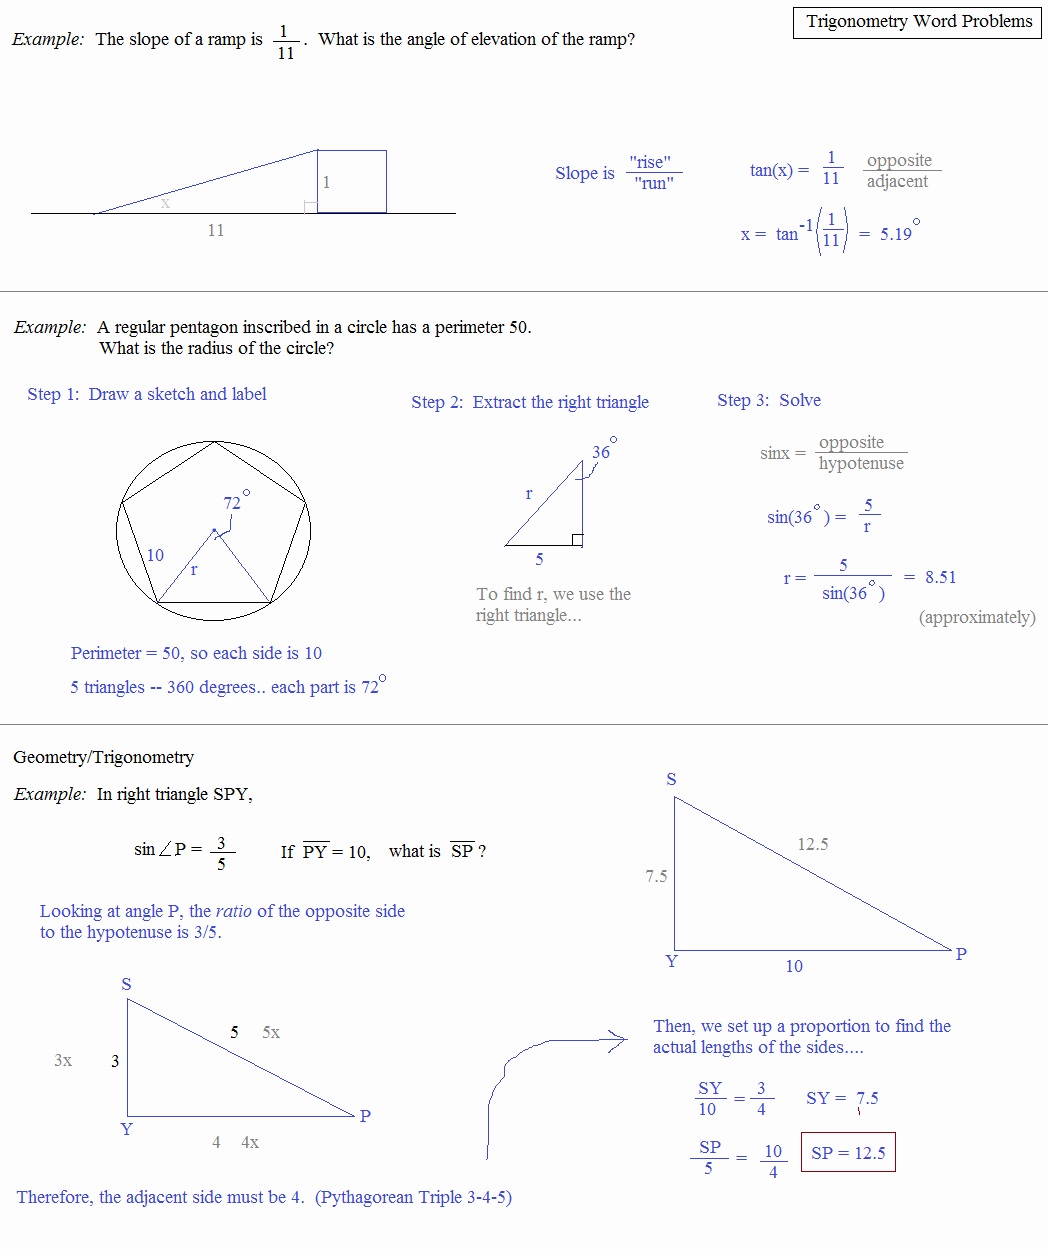 Trigonometry Word Problems Worksheet Answers Beautiful Math Plane Trigonometry Word Problems